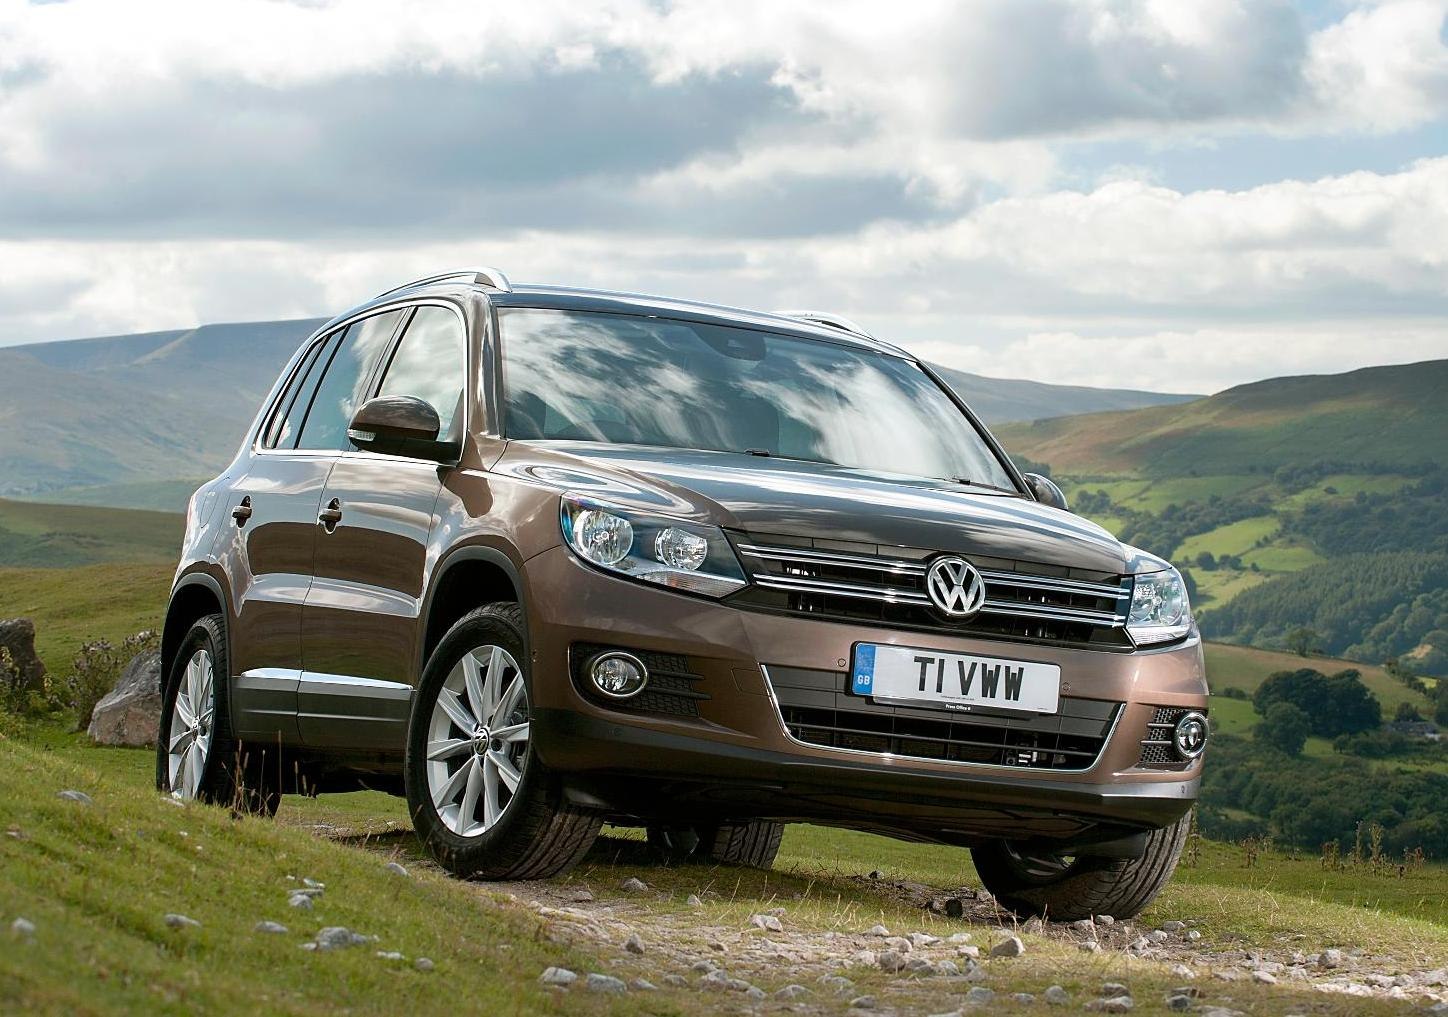 Volkswagen Tiguan Suv Price Specs Photos Amp Launch Date